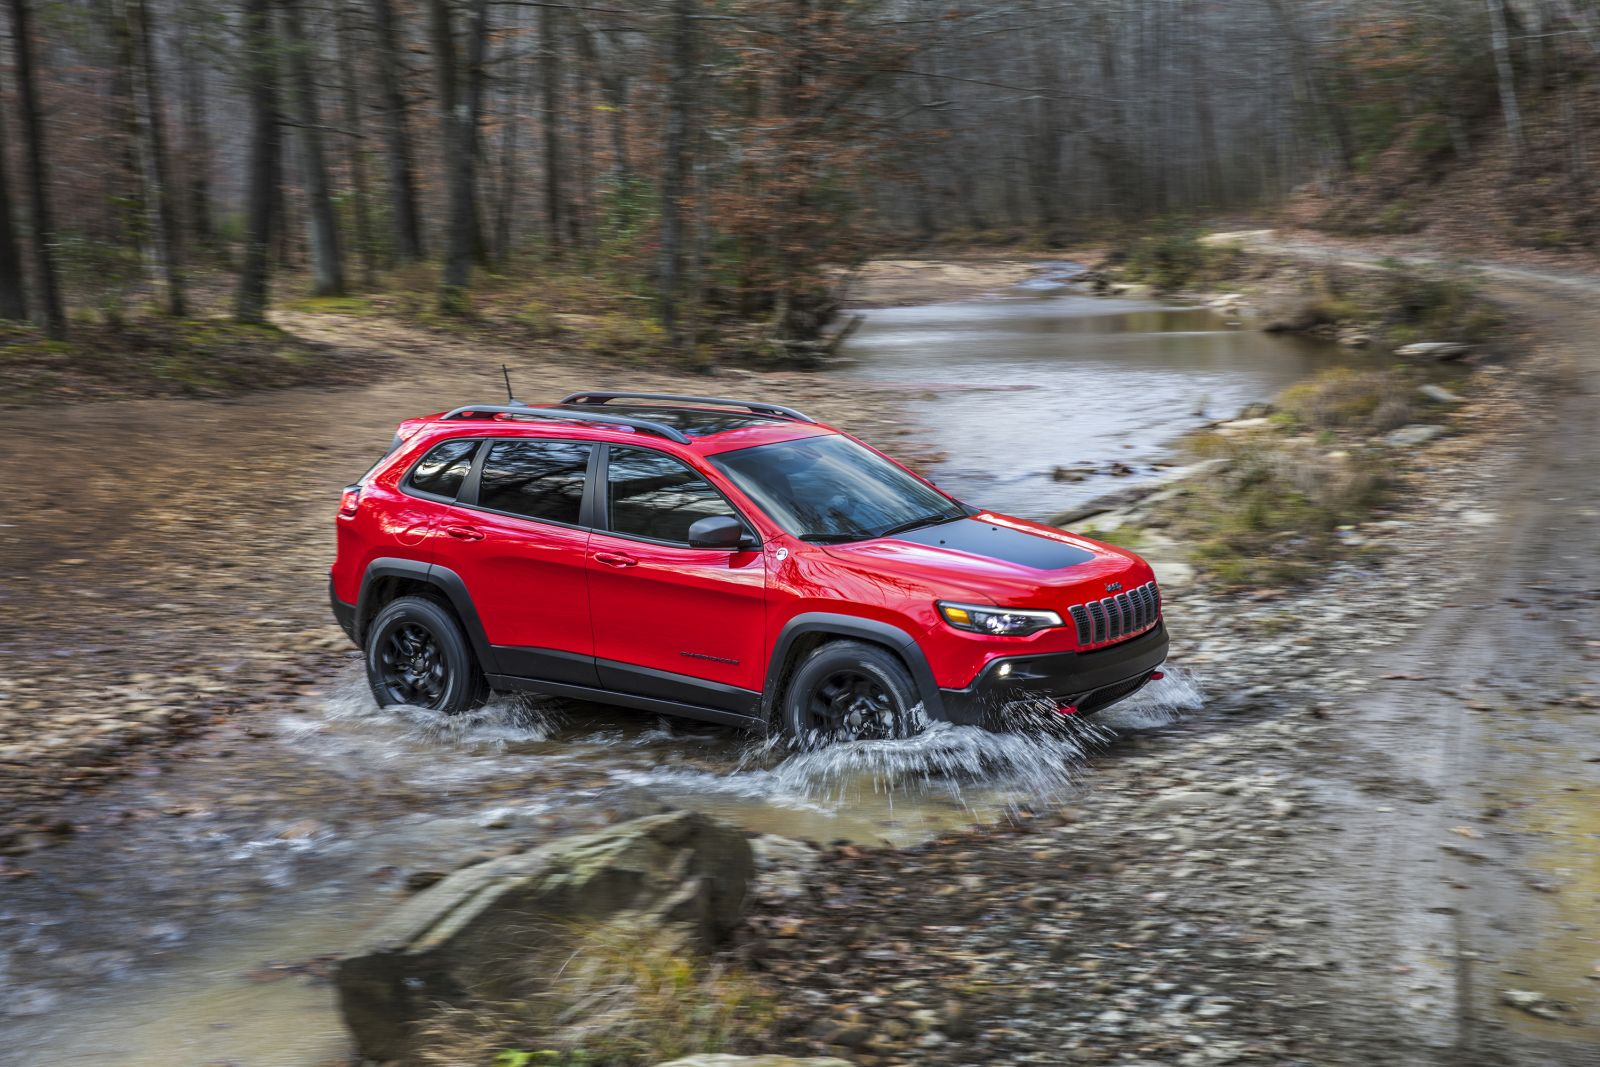 new 2019 jeep cherokee debuts at the 2018 detroit auto show motoroids. Black Bedroom Furniture Sets. Home Design Ideas